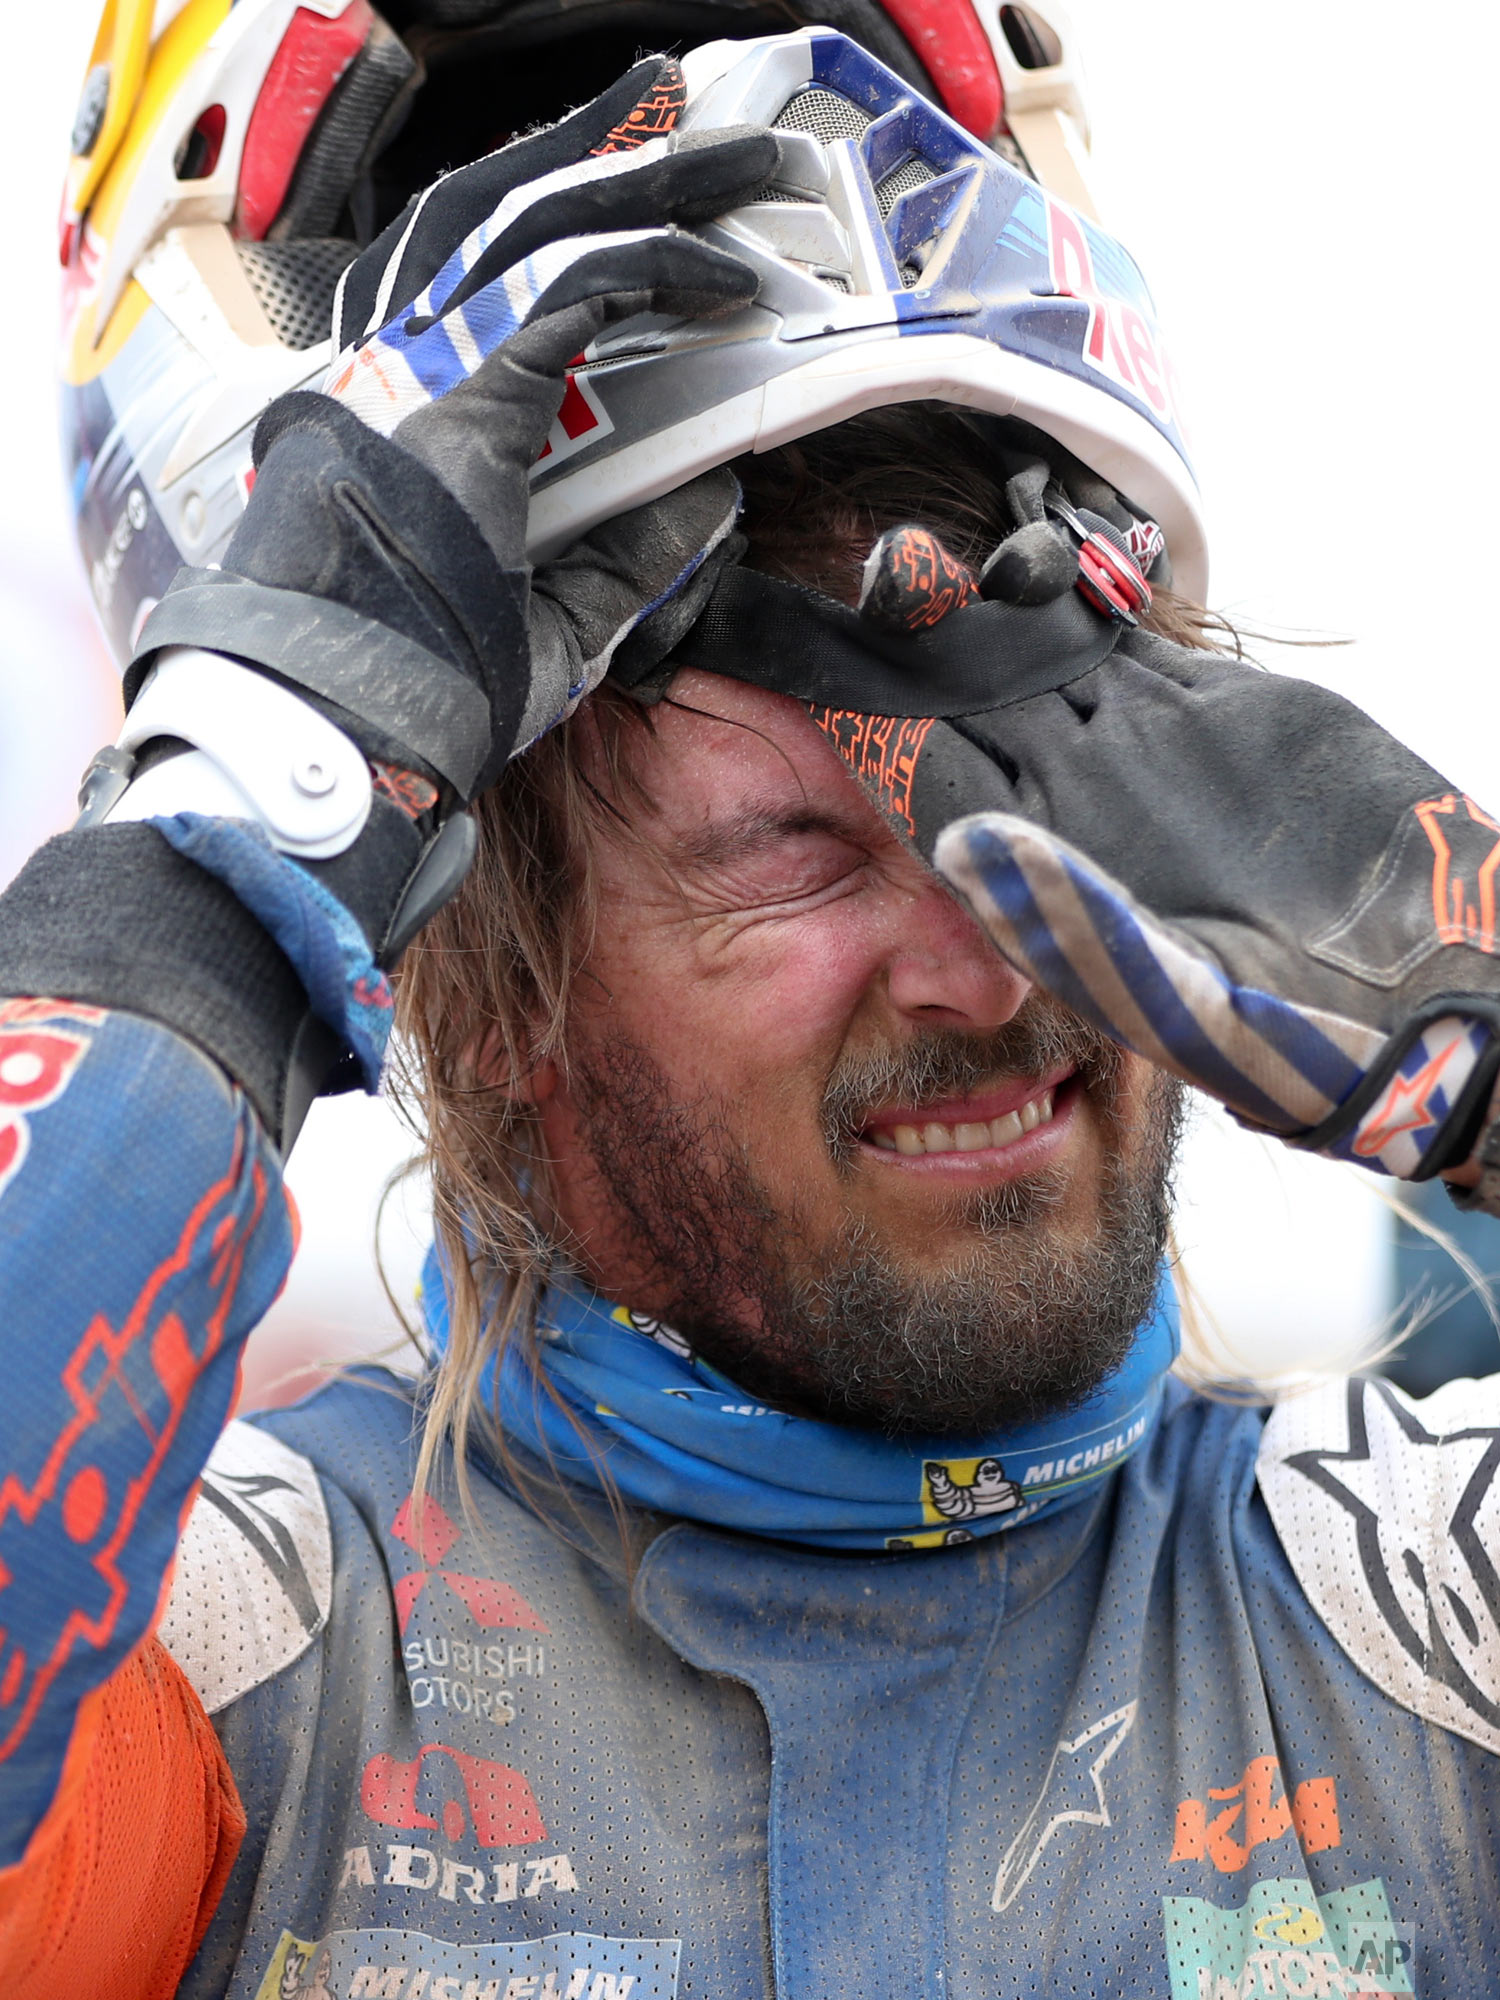 KTM motorbike rider Toby Price removes his helmet in Peru, Jan. 9, 2019. (AP Photo/Ricardo Mazalan)